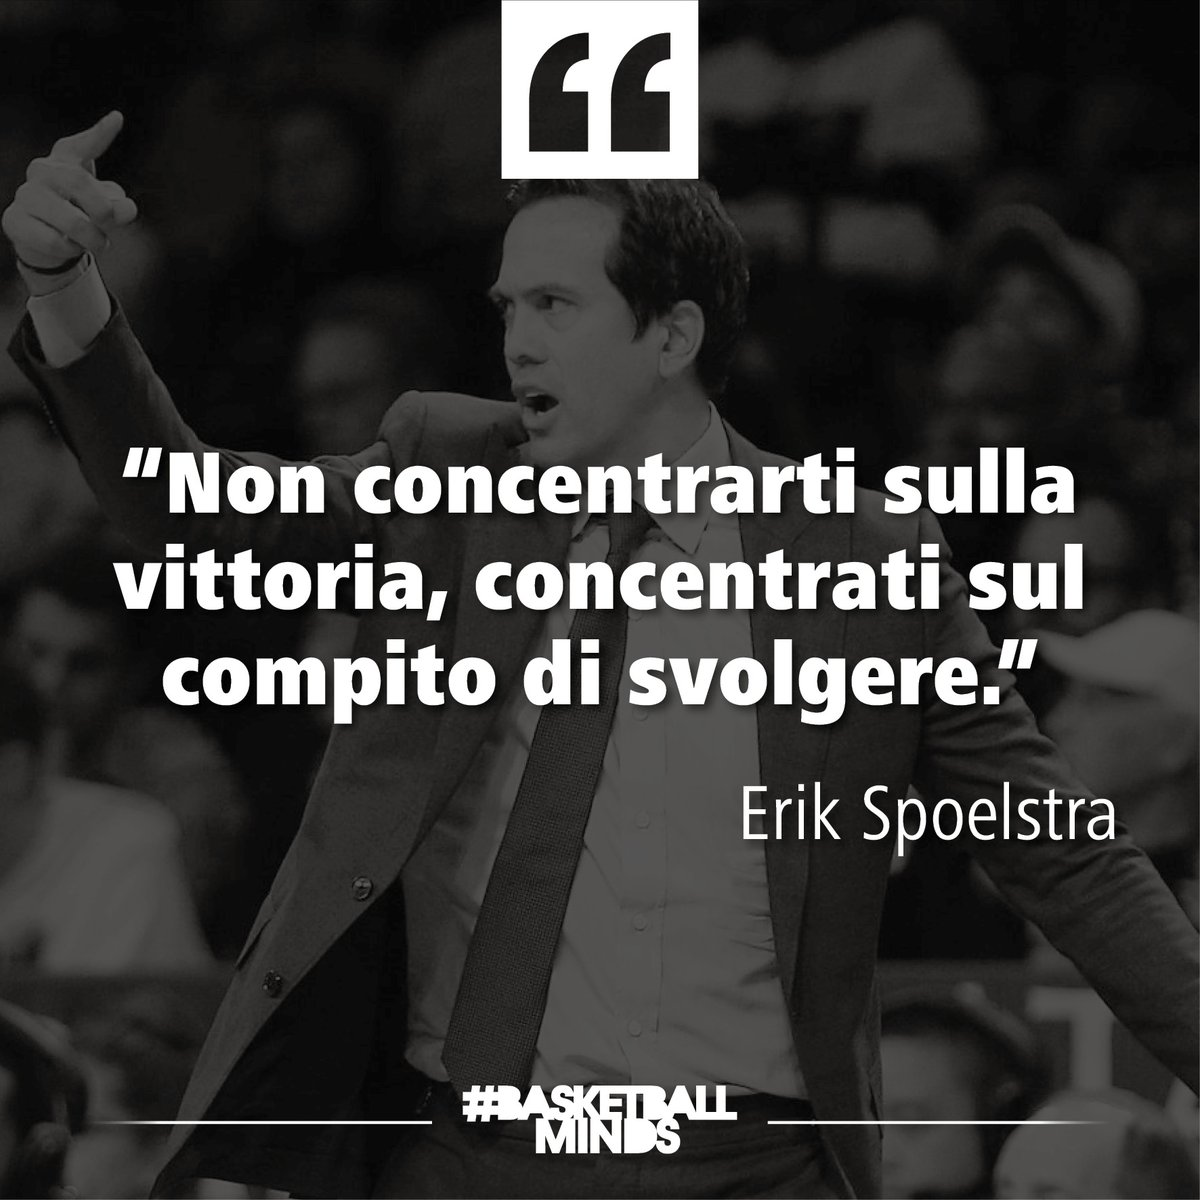 Concentriamo sulle cose importanti!  #WednesdayQuotes #BasketballQuotes #ErikSpoelstra https://t.co/sk33t02qkU